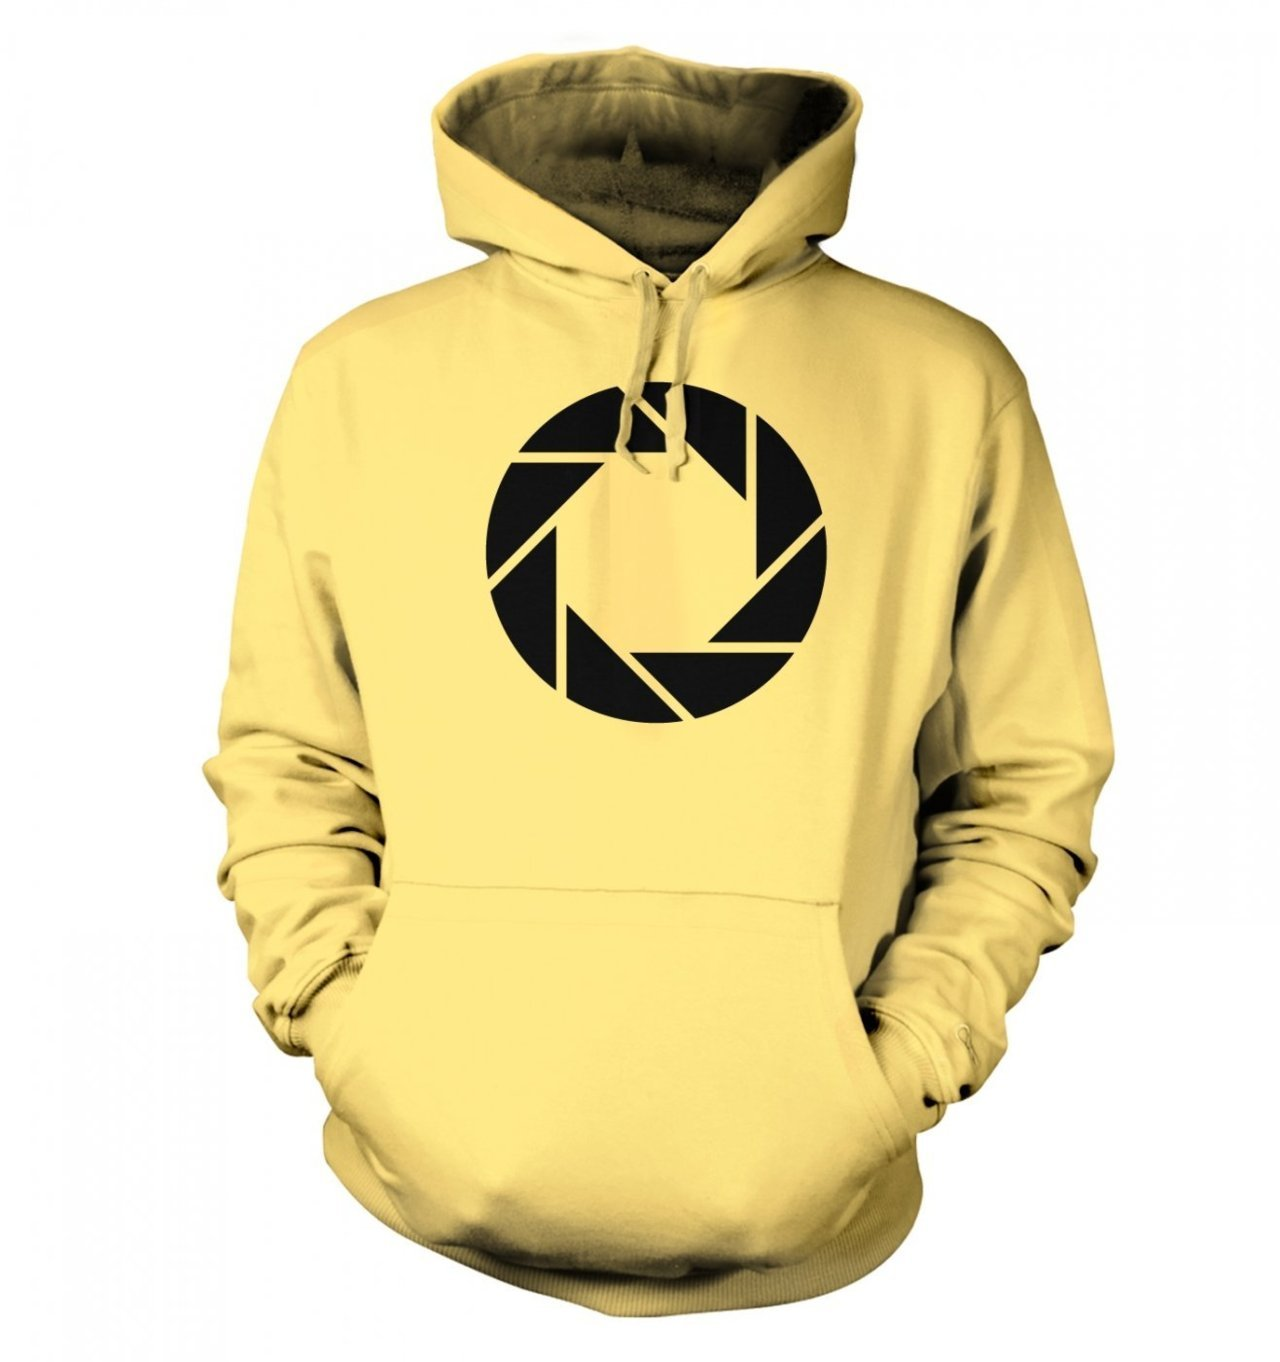 Something Geeky Aperture Science Hoodie at $31.98 This is an Aperture Science logo hoodie, inspired by the Portal and Portal 2 video games. It shows the logo of the research company in charge of producing the Aperture Science Handheld Portal Device, or as most people know it: the Portal gun.